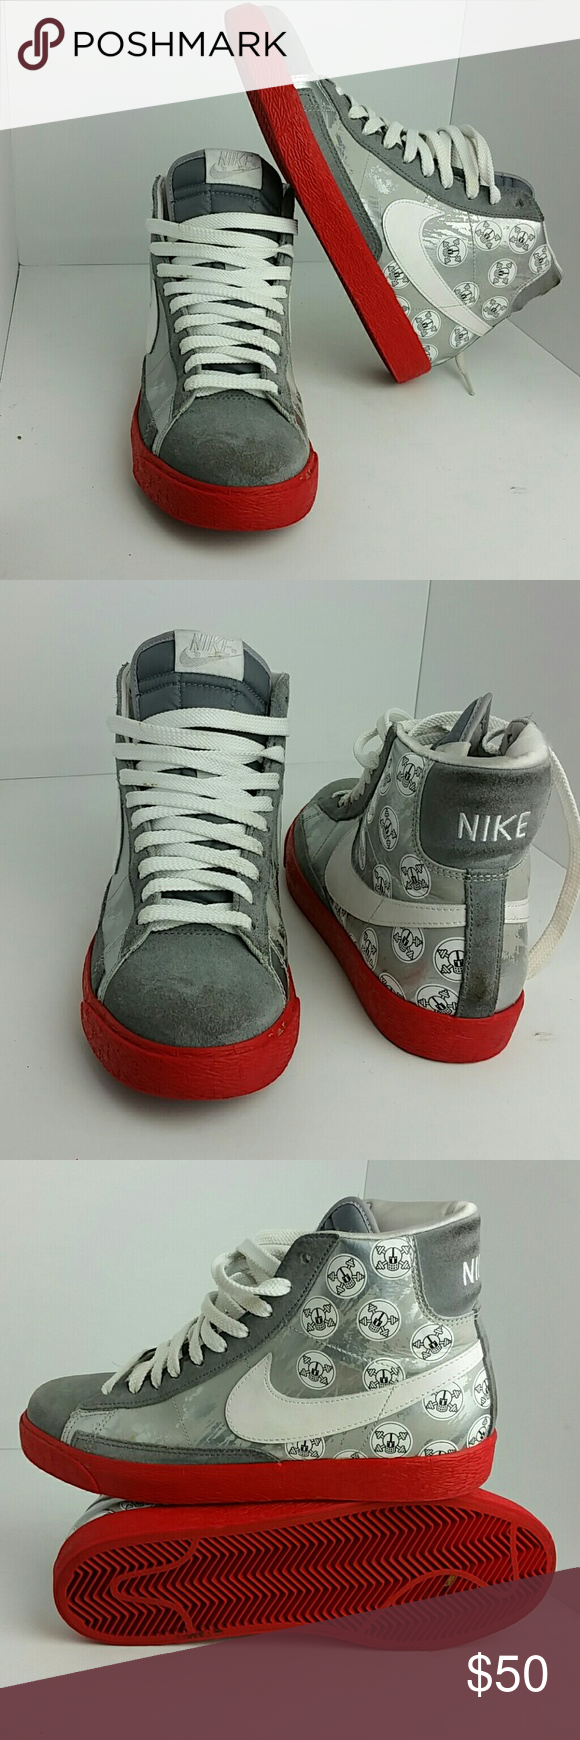 new product 3a3bc 67435 NIKE BLAZER HIGH OHIO STATE VERY CLEAN INSIDE-OUT SKE   TUB NIKE Shoes  Athletic Shoes